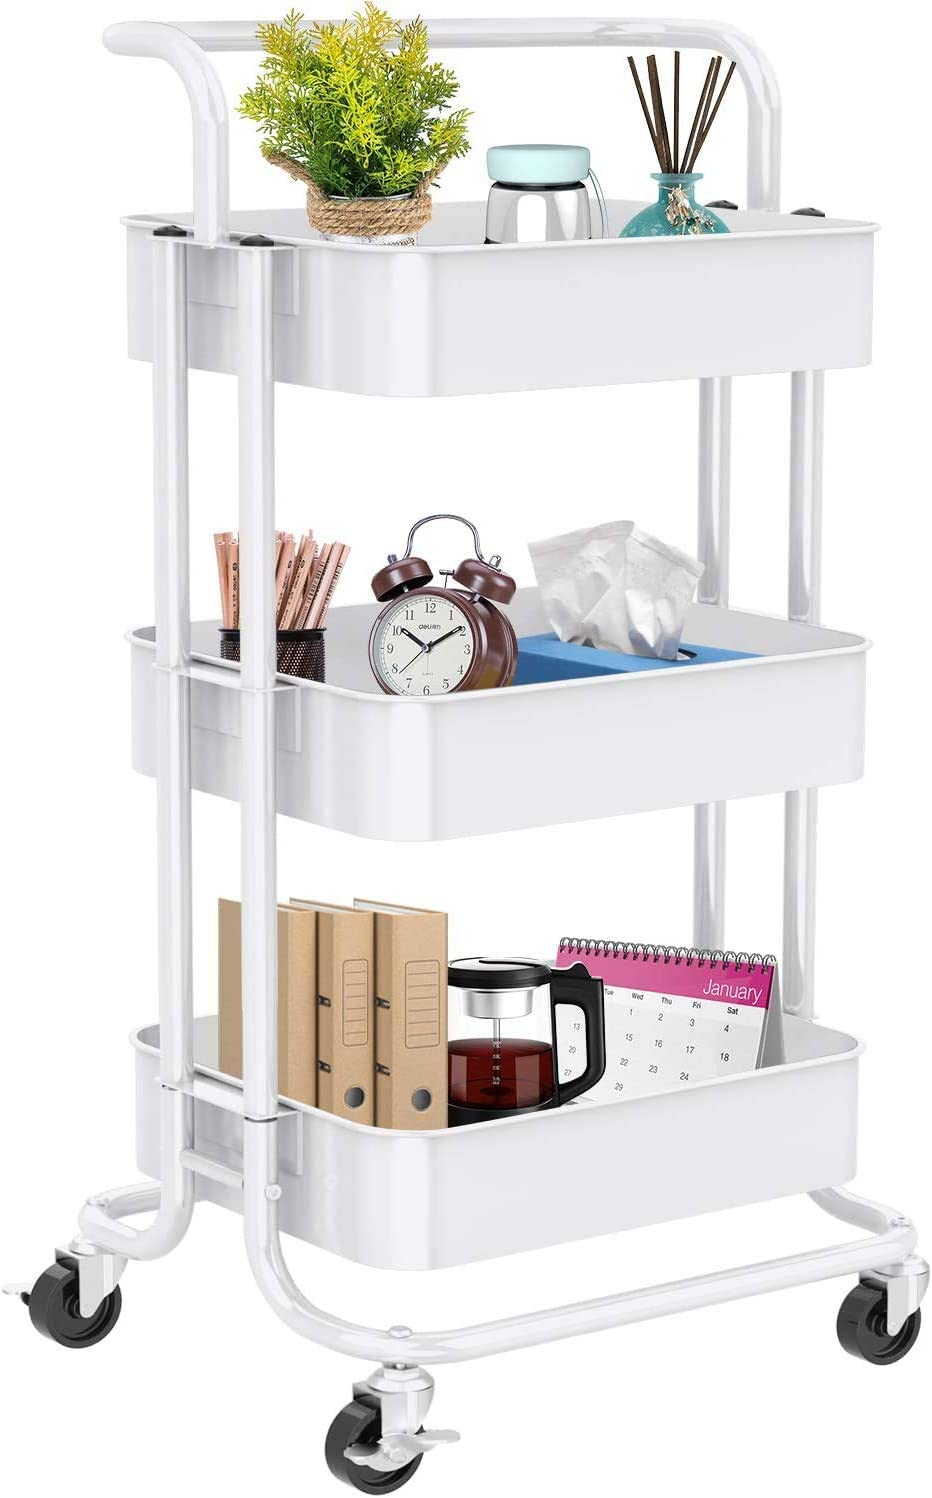 3-Tier Rolling Utility Cart, Multifunctional Metal Organization Storage Cart with 2 Lockable Wheels for Office, Home, Kitchen, Bedroom, Bathroom, Laundry Room by Pipishell (White)